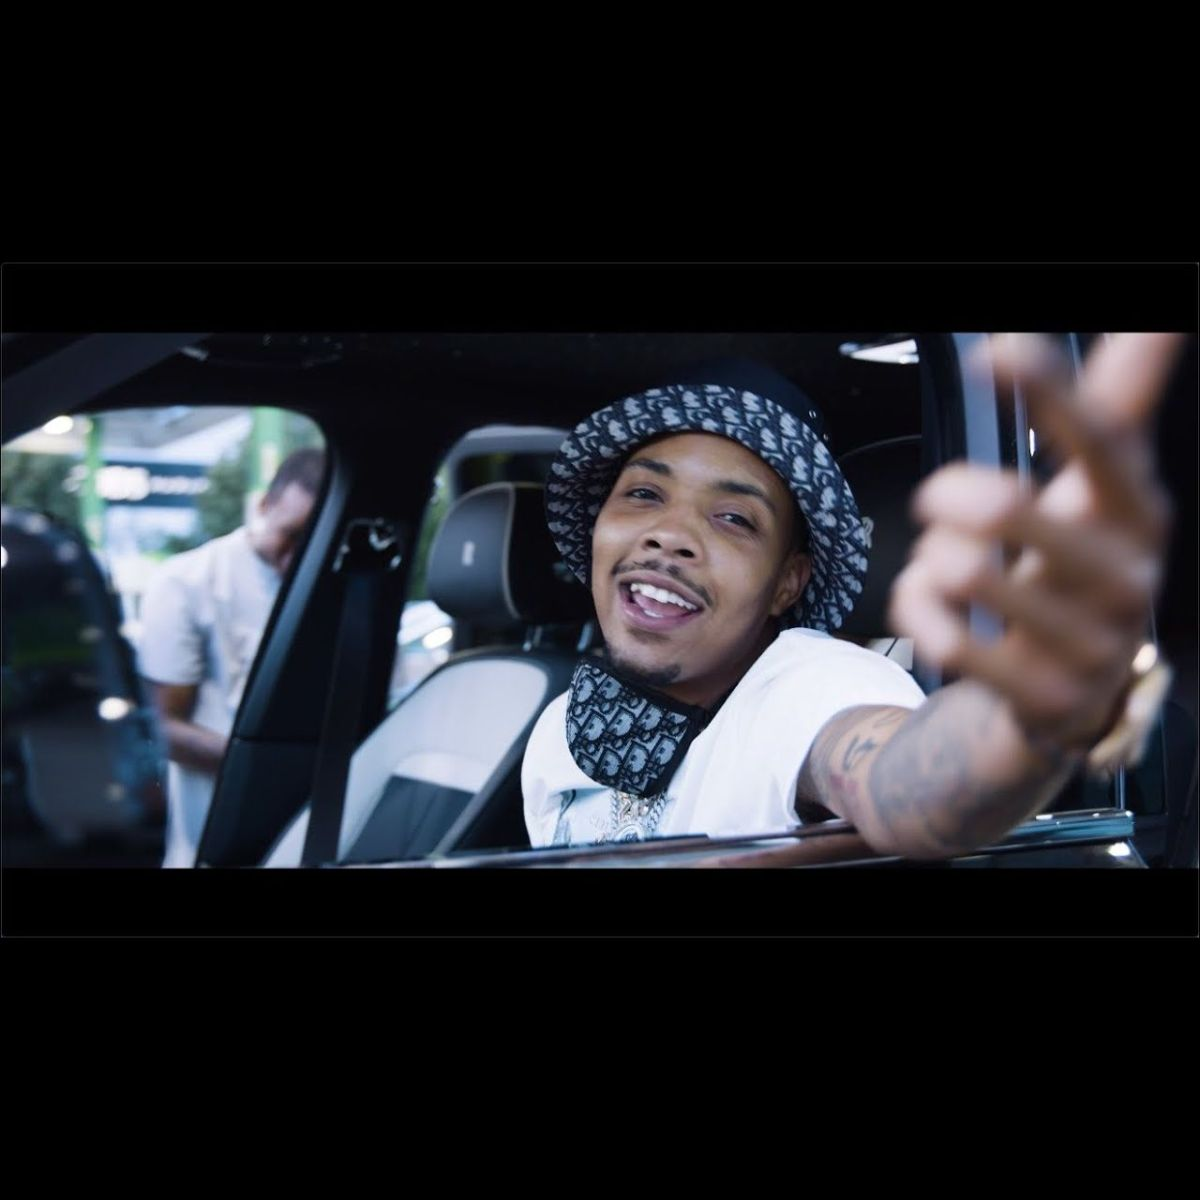 G Herbo - Ridin Wit It (Thumbnail)